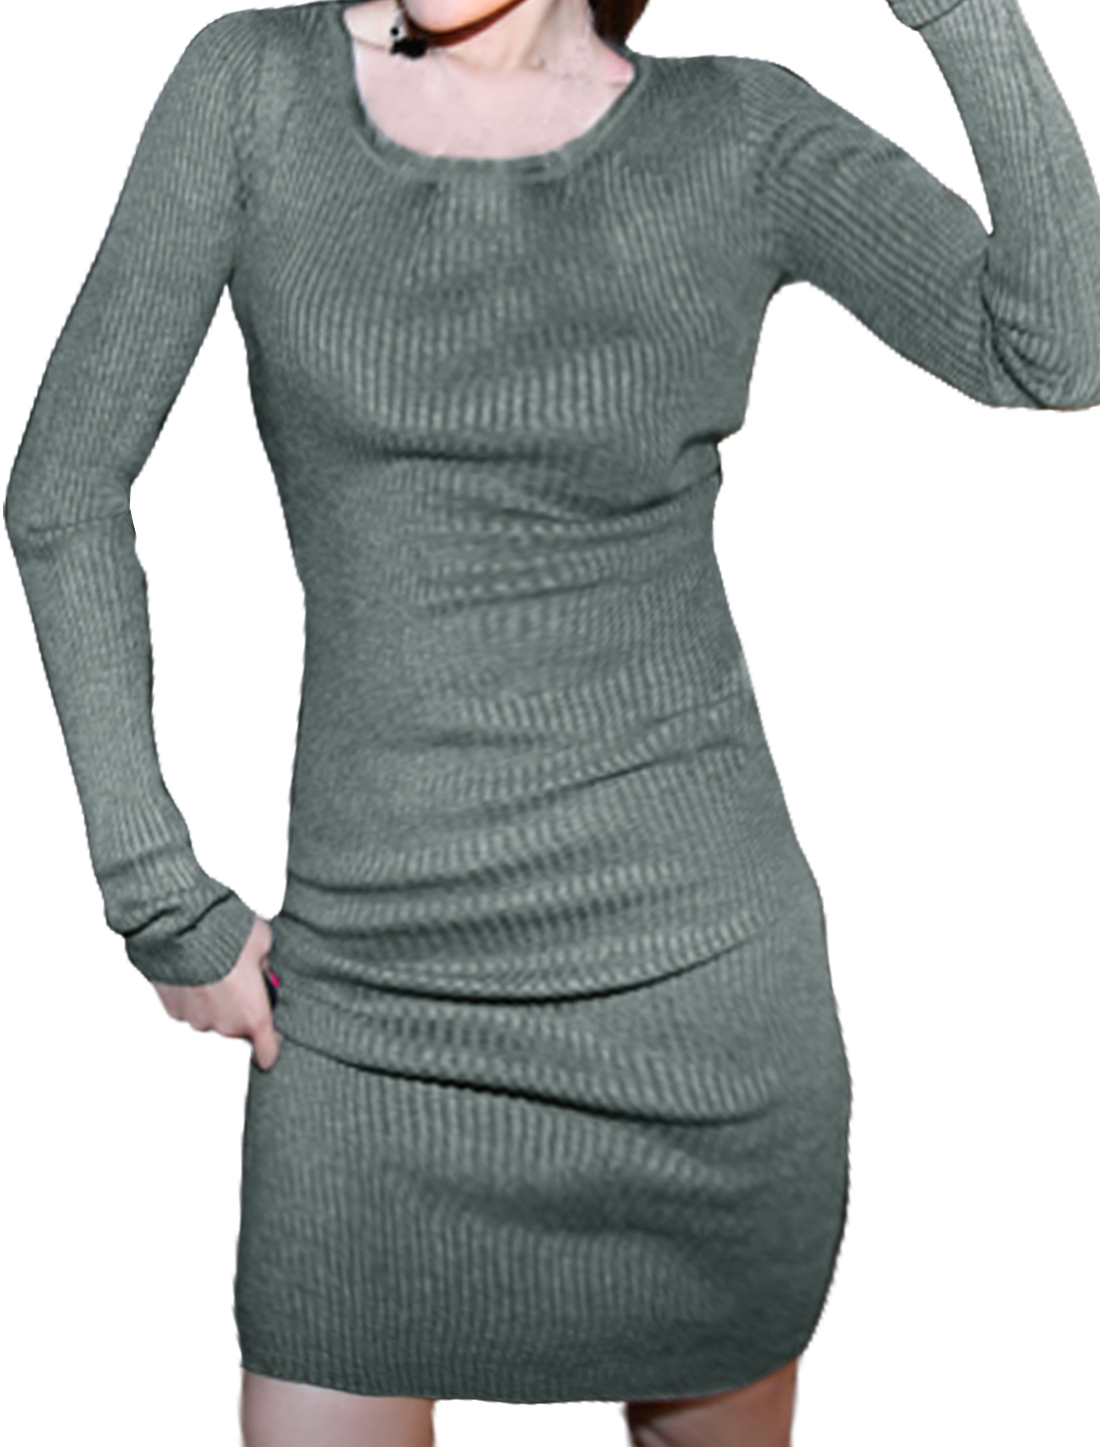 Women Round Neck Long Sleeves Pullover Ribbed Sheath Dress Gray XS